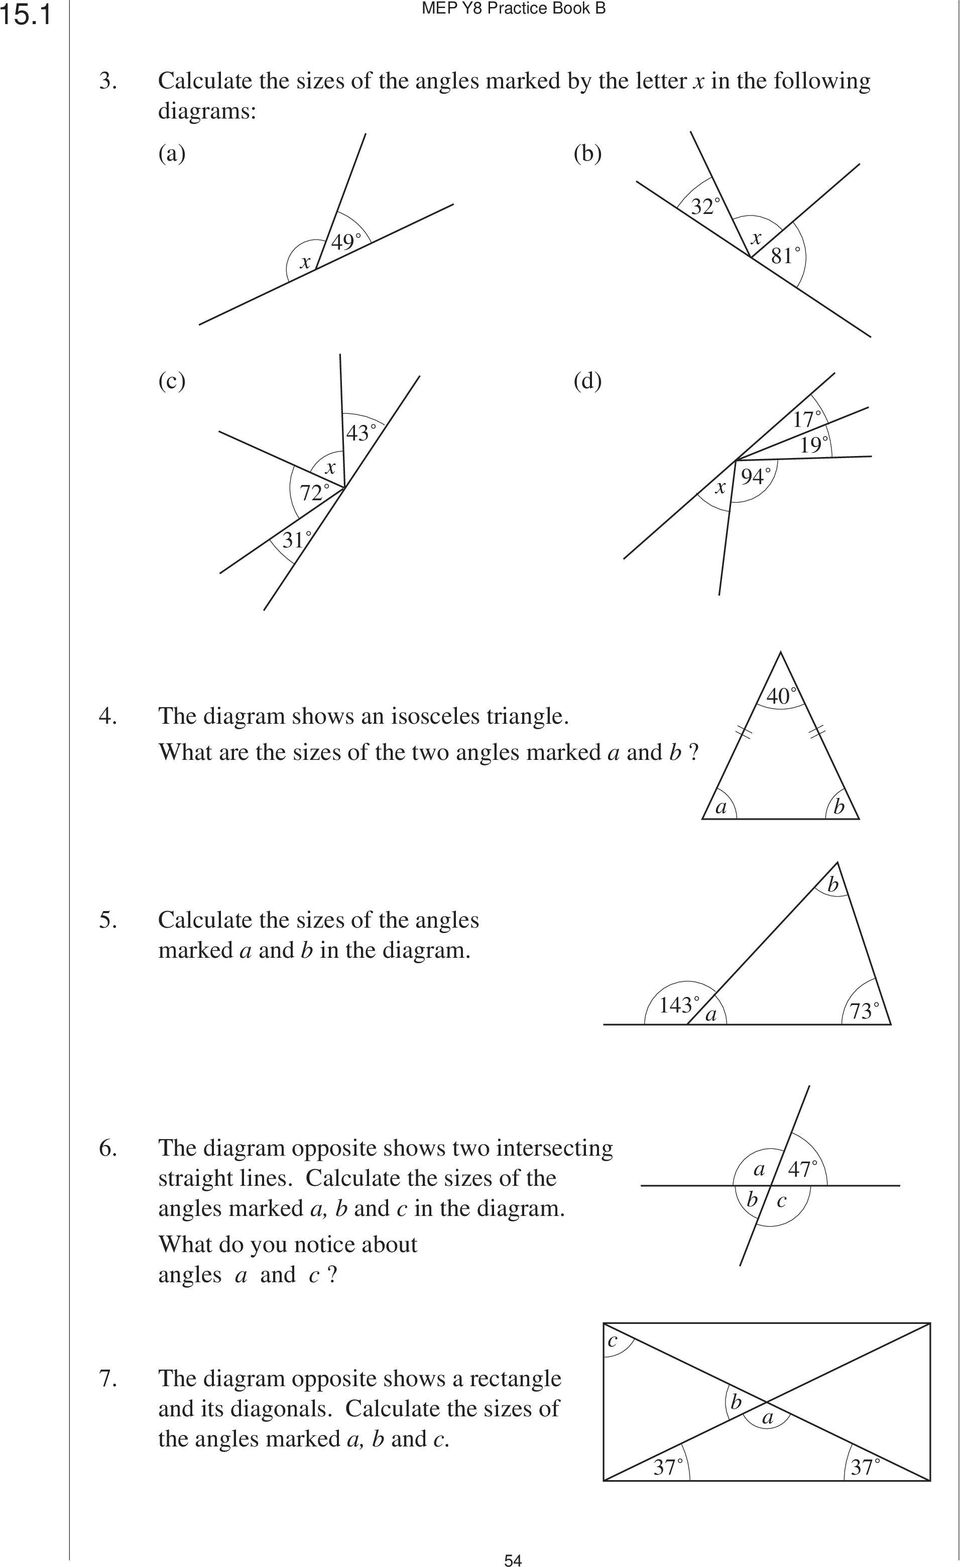 The diagram shows an isosceles triangle. What are the sizes of the two angles marked a and? 40 a 5.